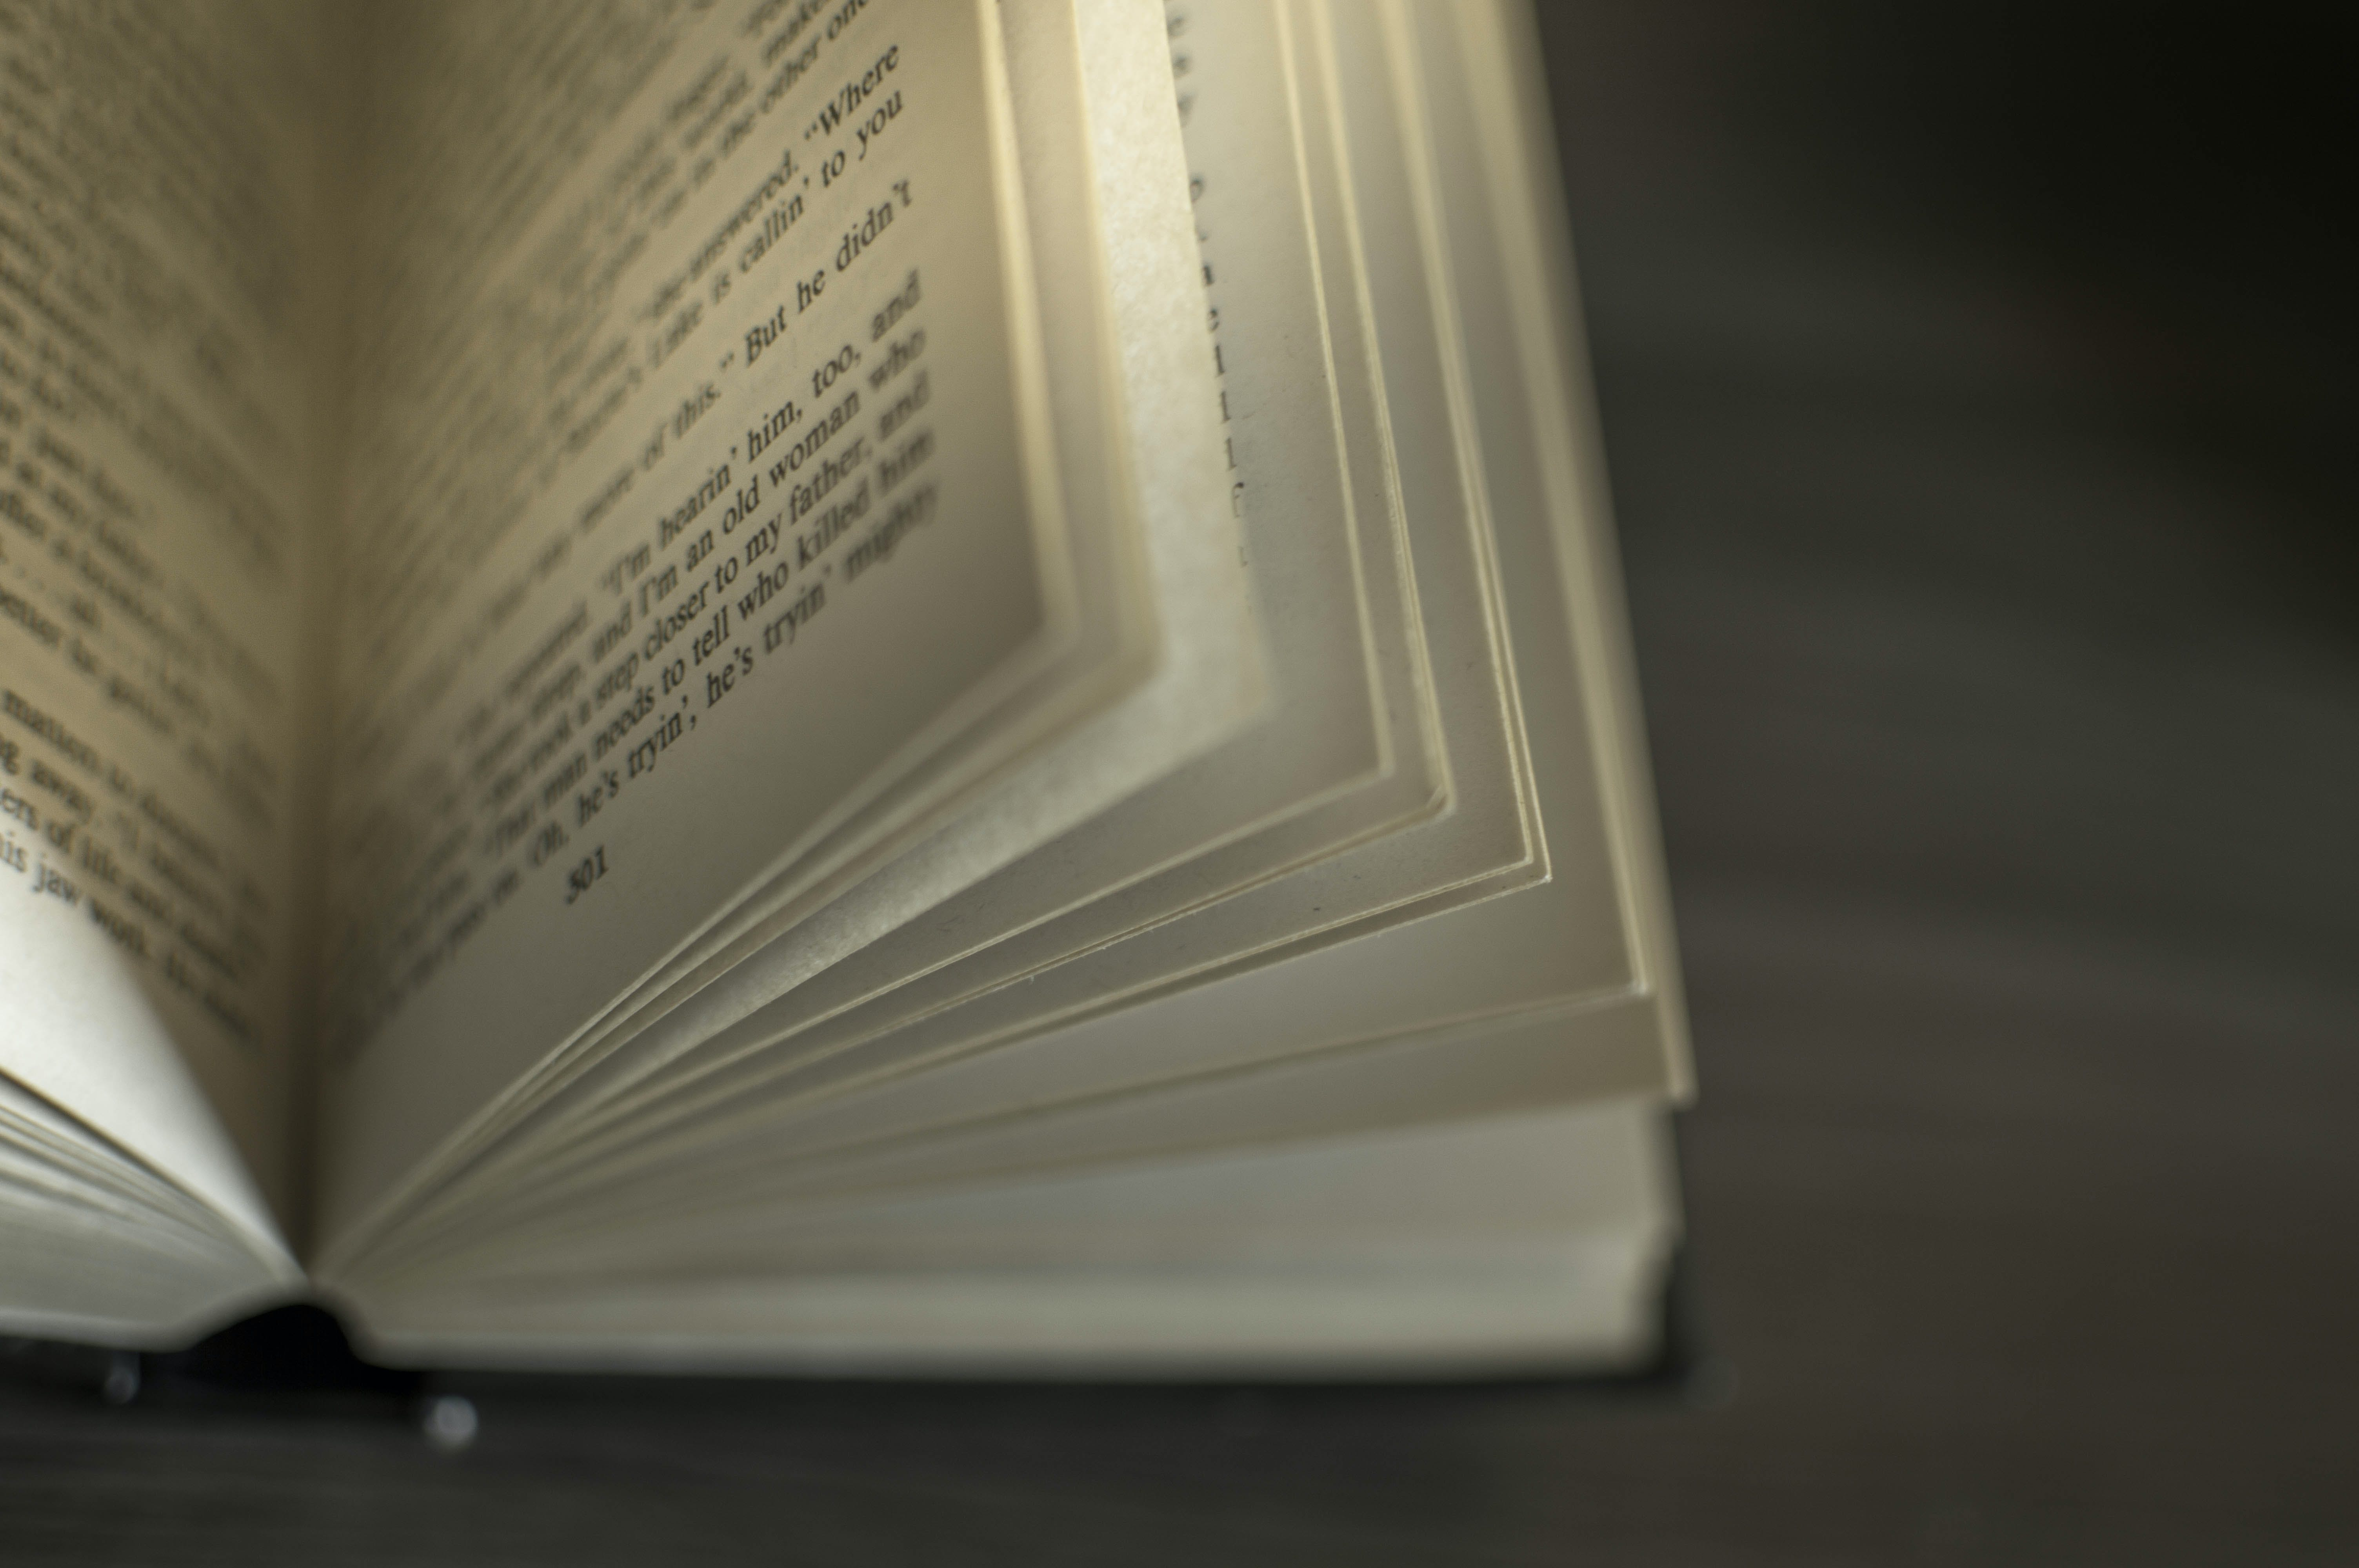 Opened Book on Black Surface